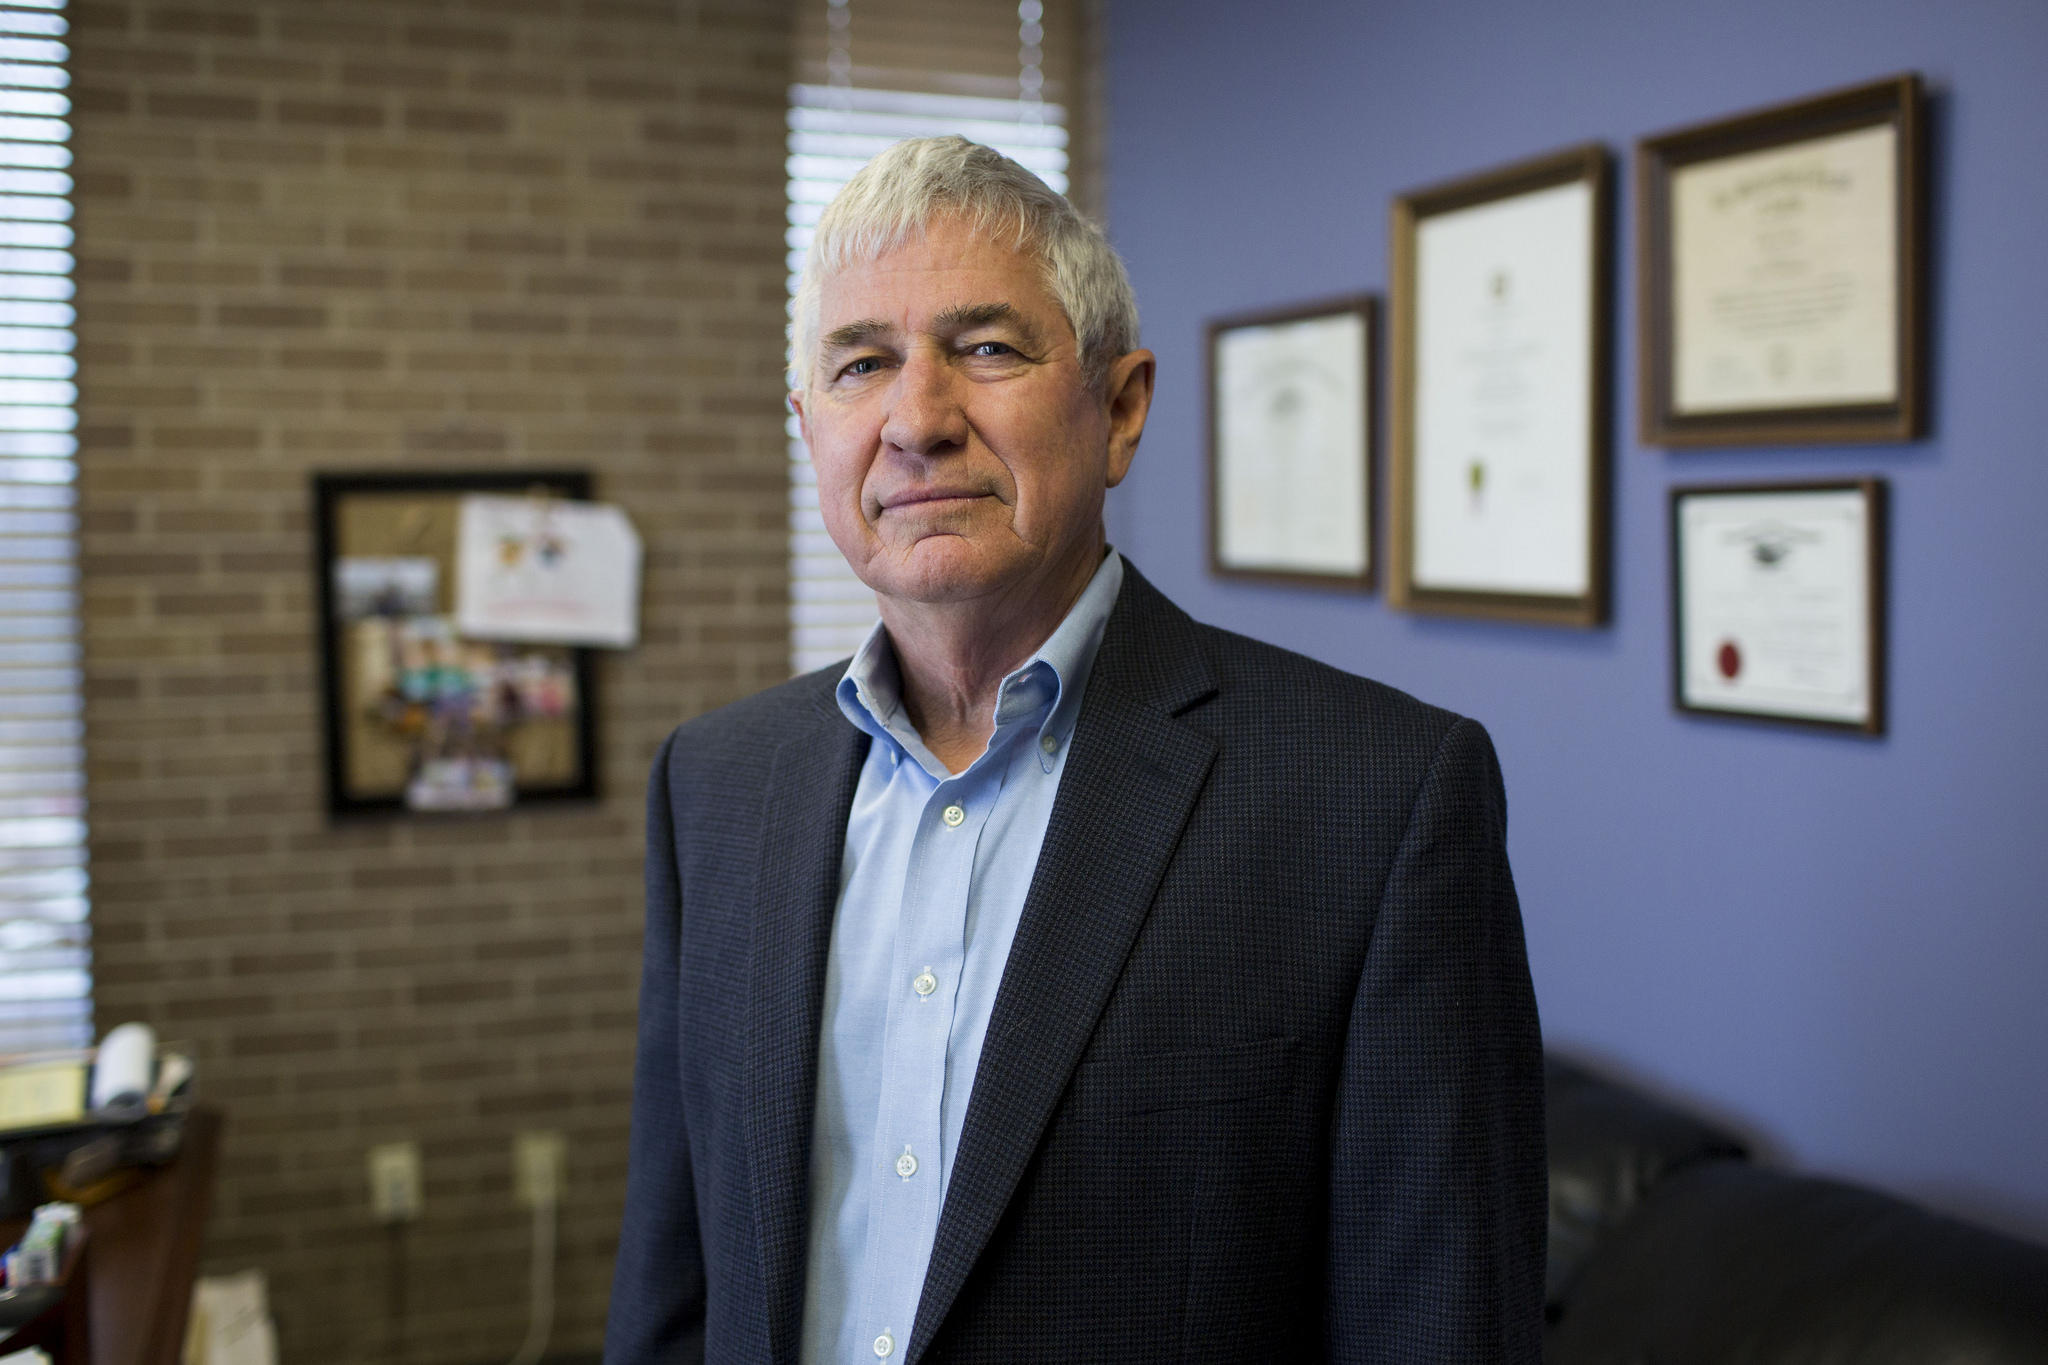 Fred Fuchs, a lawyer with Texas RioGrande Legal Aid, says tenants often aren't aware their landlords can take their property as a way to recoup unpaid rent.